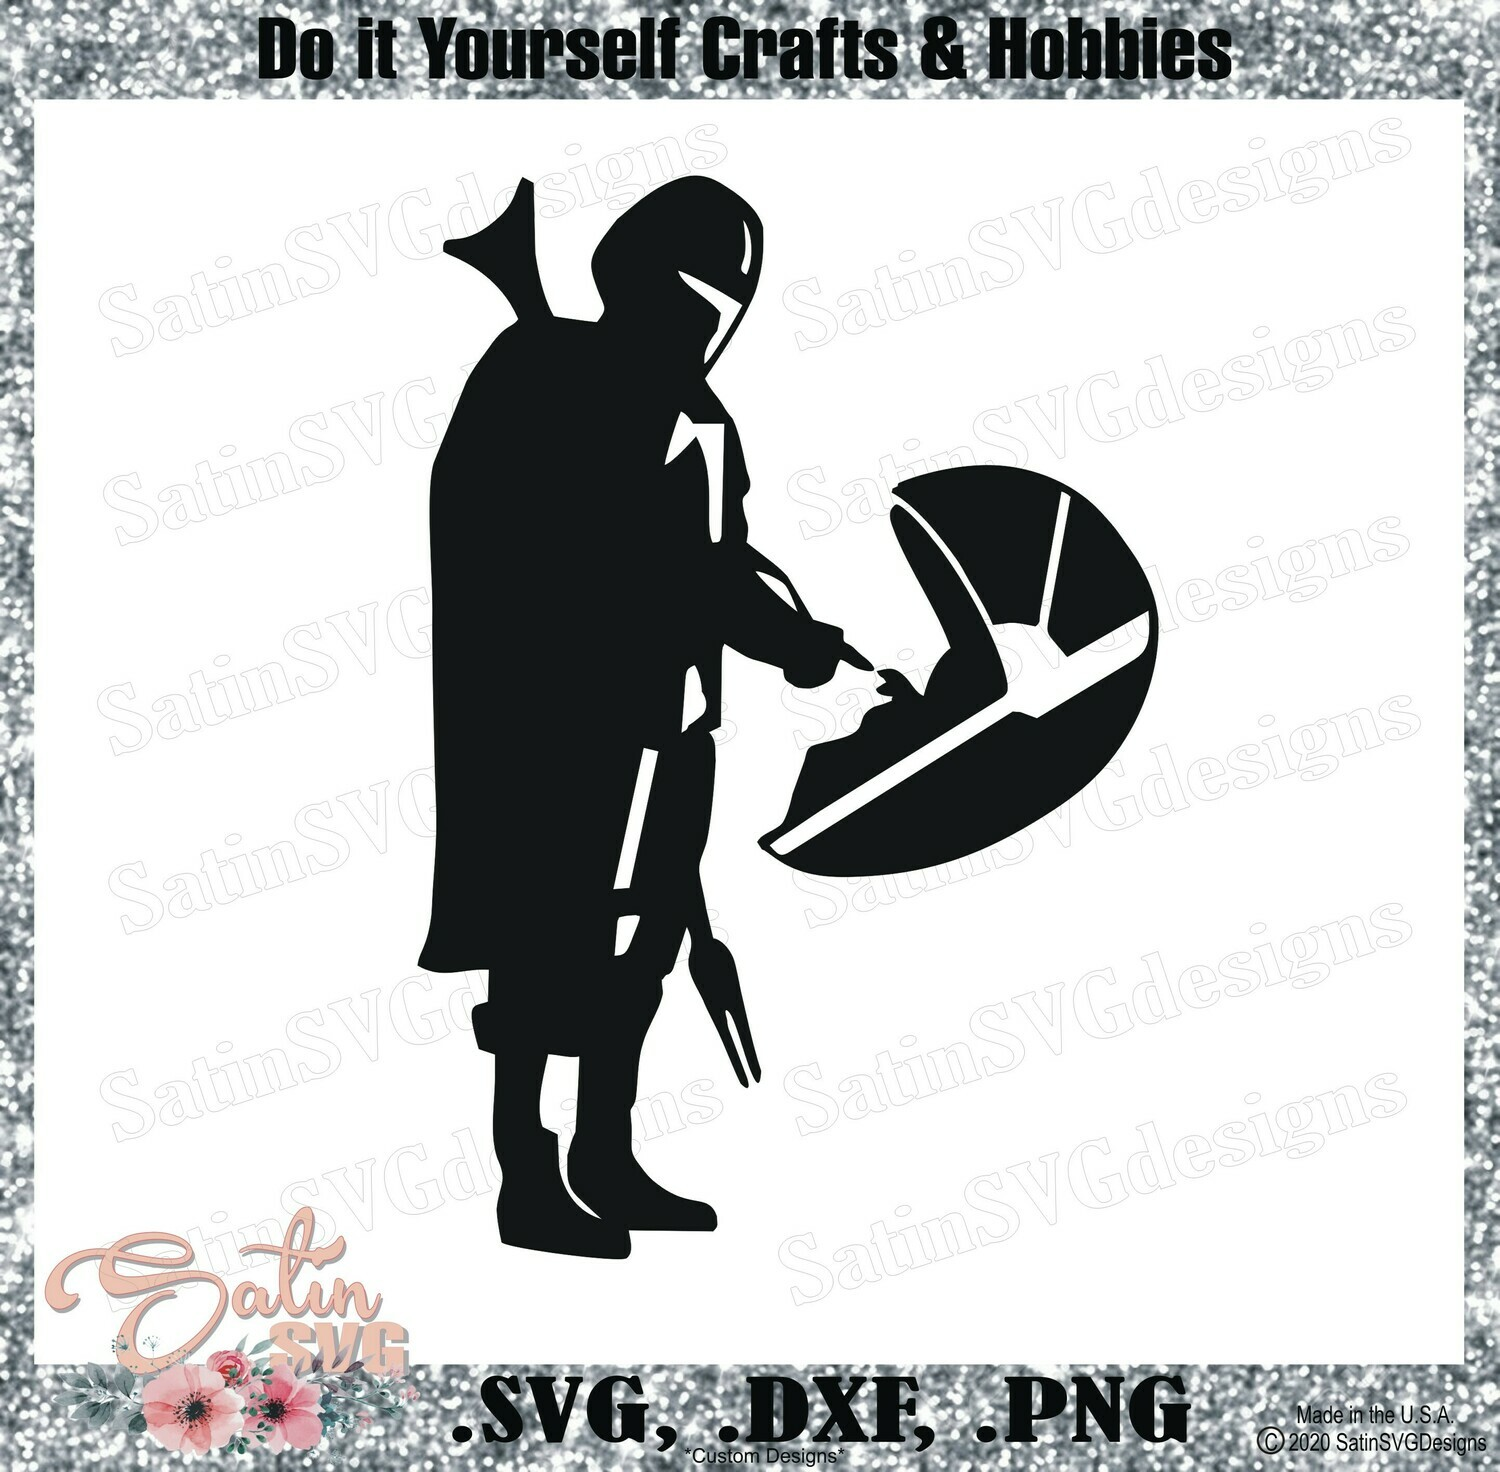 Mandalorian Baby Yoda Way Star Wars Design Svg Files Cricut Silhouette Studio Digital Cut Files Valentines